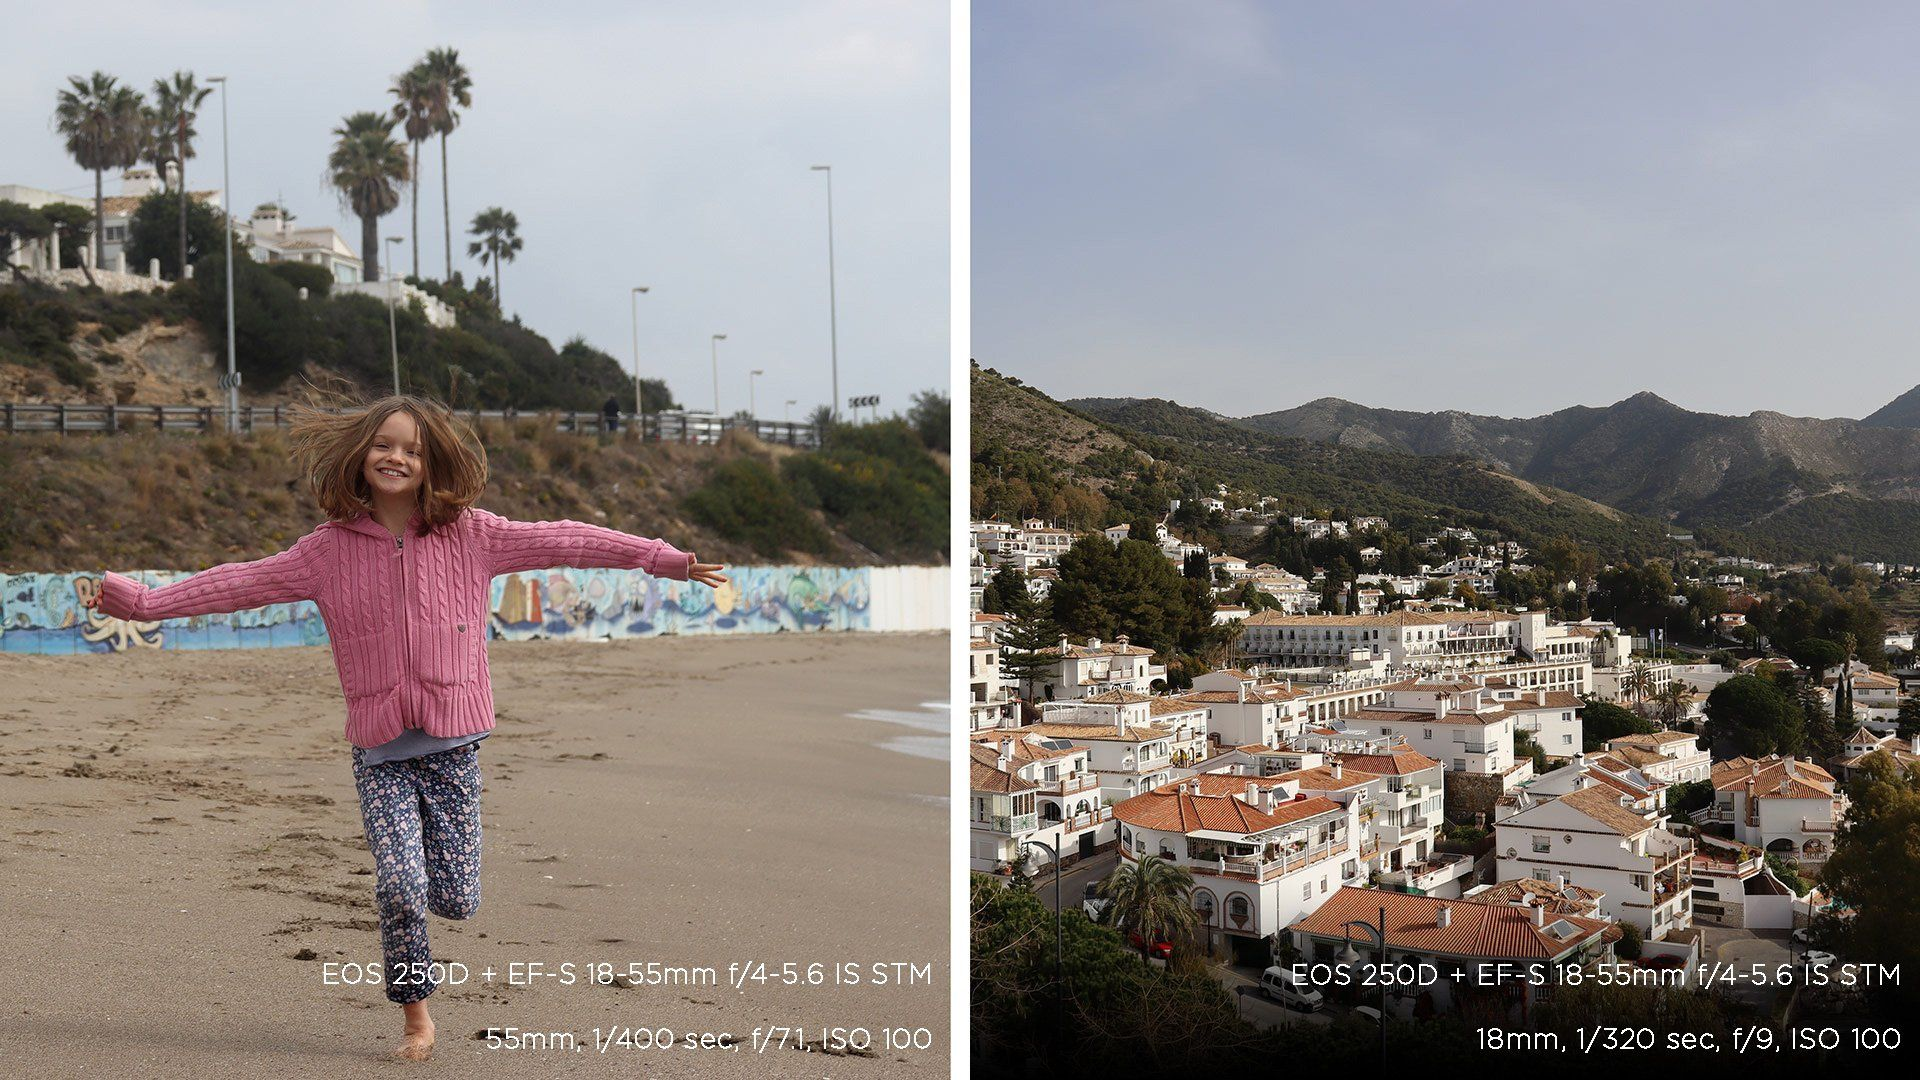 A composite picture: a girl runs towards us on a sandy beach in one; a view of a mountaintop village in the other. Photos taken on a Canon EOS 250D.